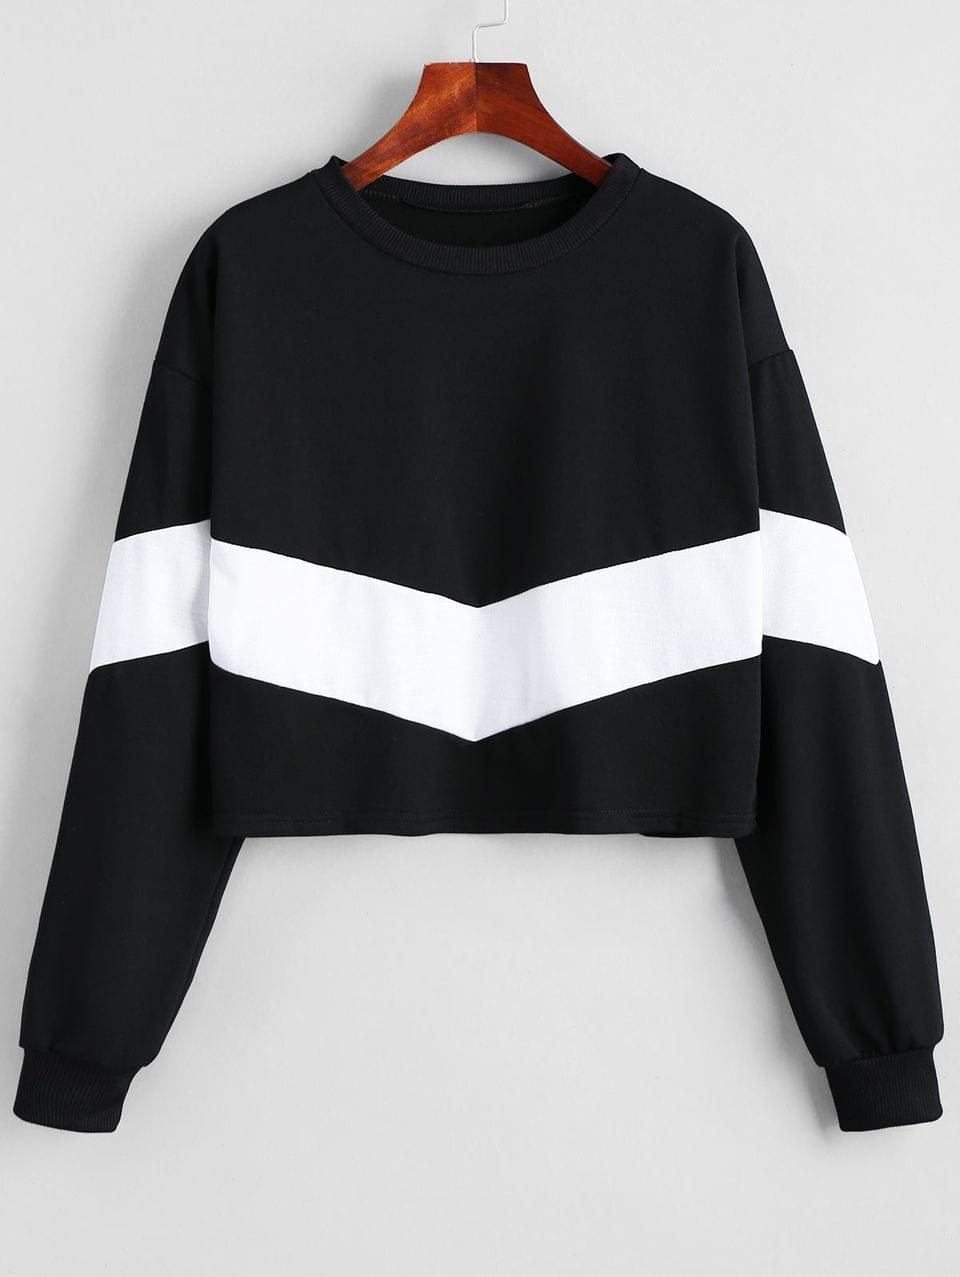 Women's Cropped Two Tone Sweatshirt - White And Black M